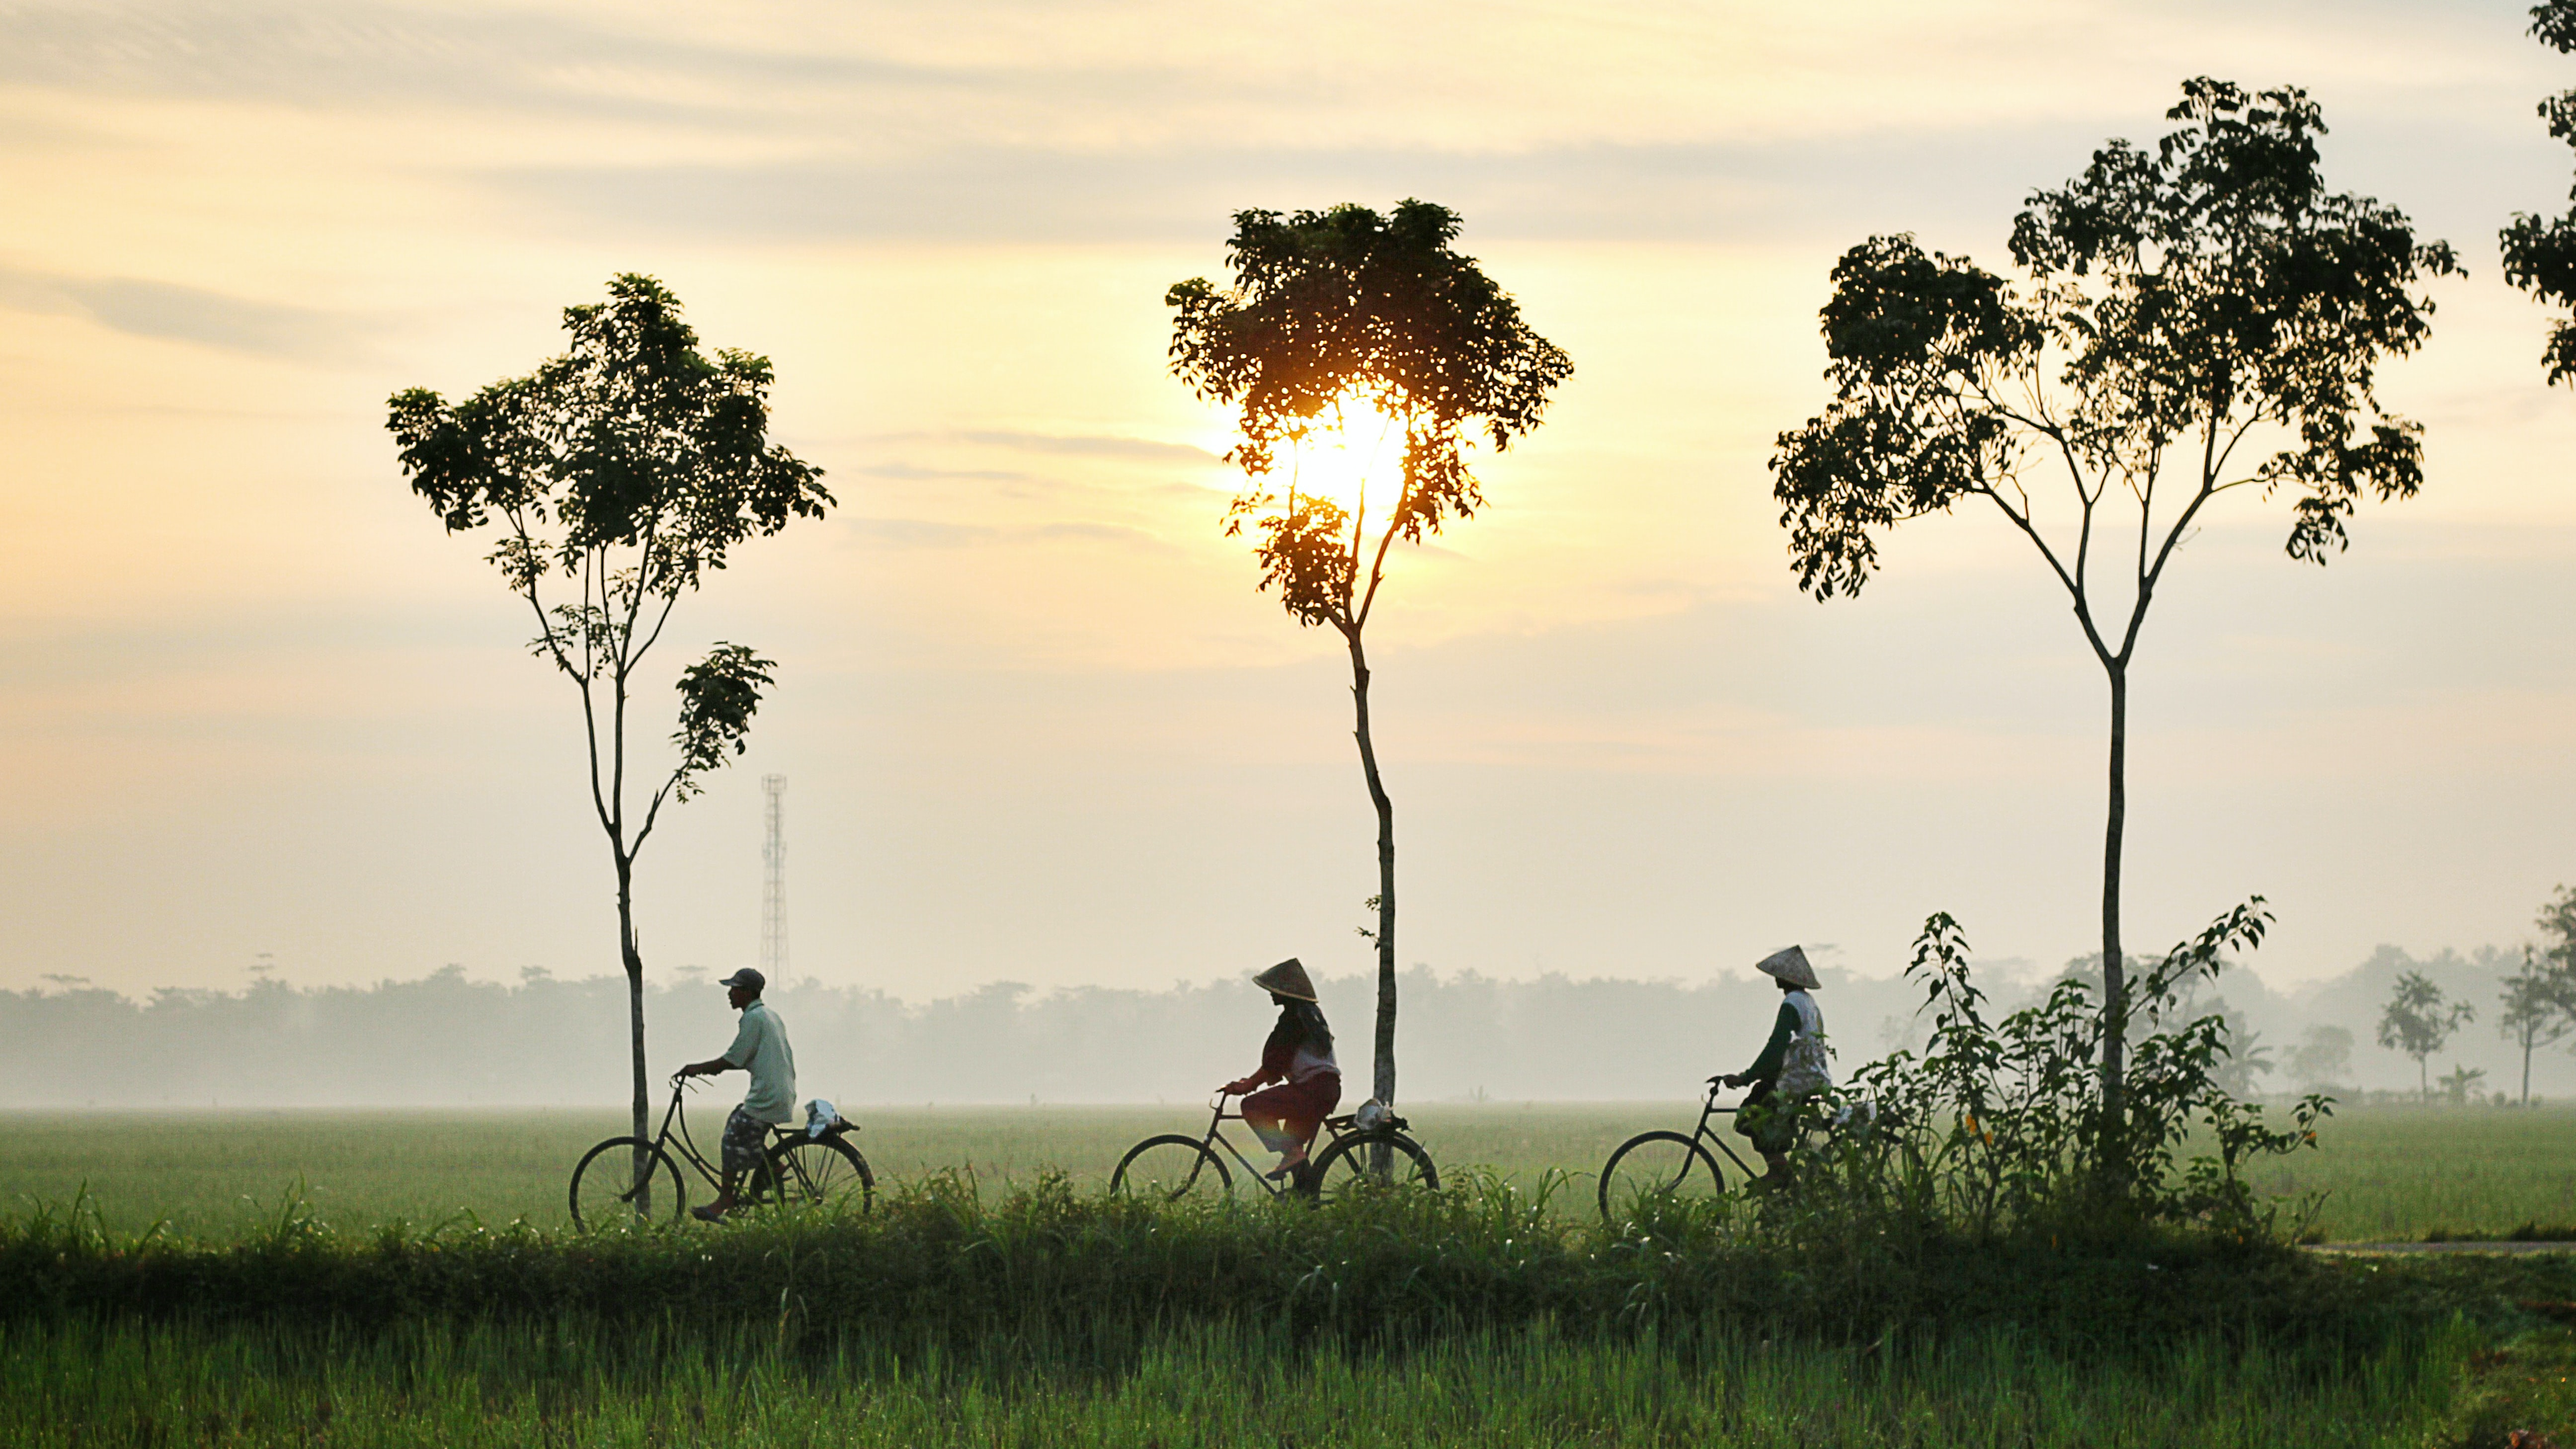 Indonesia | unsplash.com